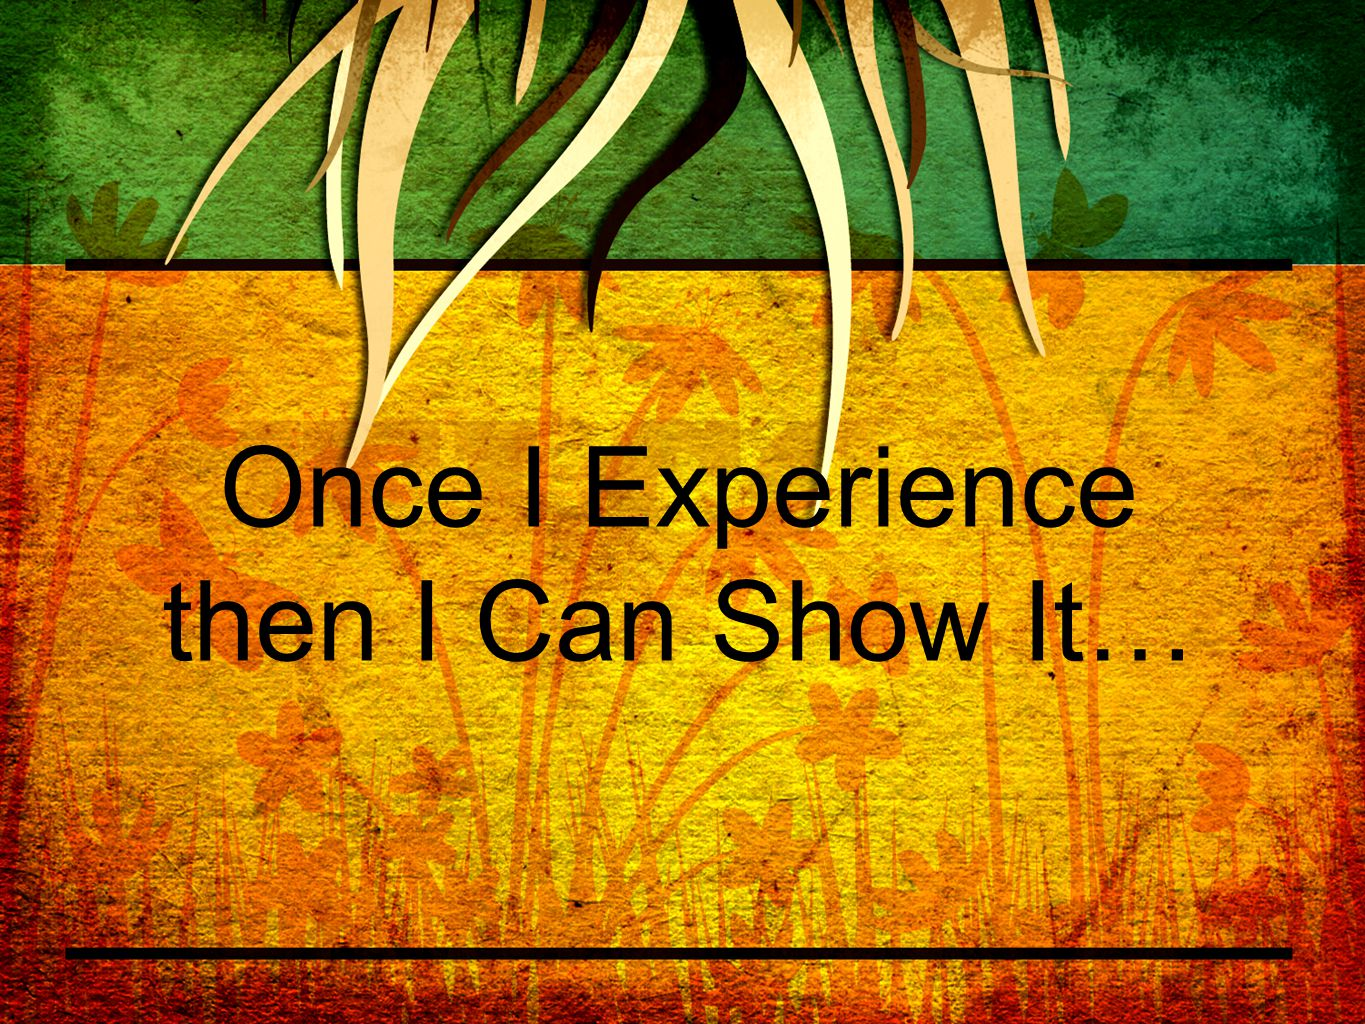 Once I Experience then I Can Show It…